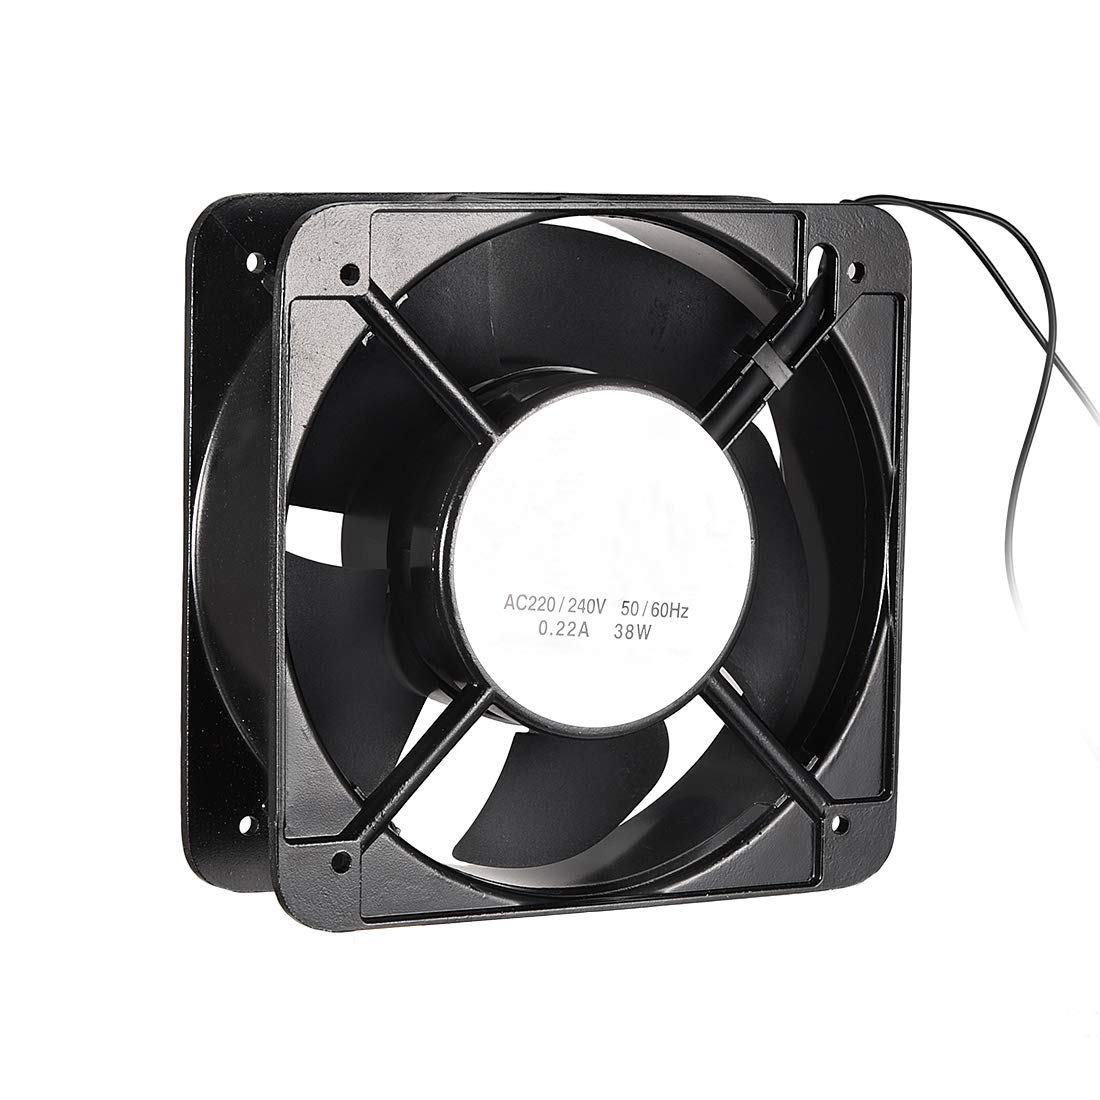 uxcell Cooling Fan 150mm x 150mm x 50mm FP-108EX-B1-B AC 220V-240V 0.22A Dual Ball Bearings